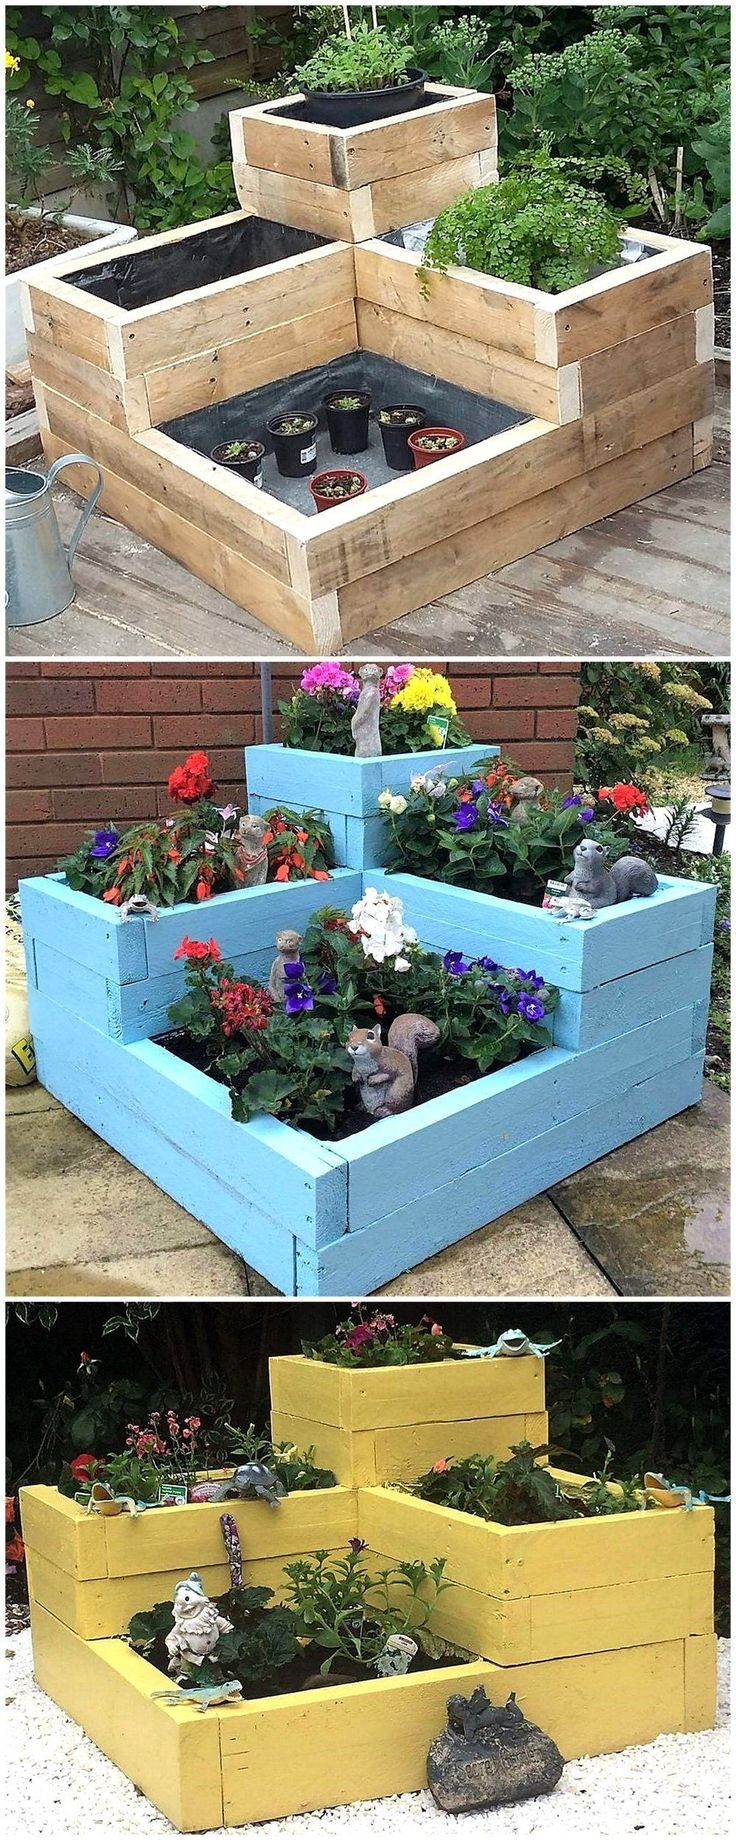 48 Affordable Diy Wooden Pallet Project Ideas